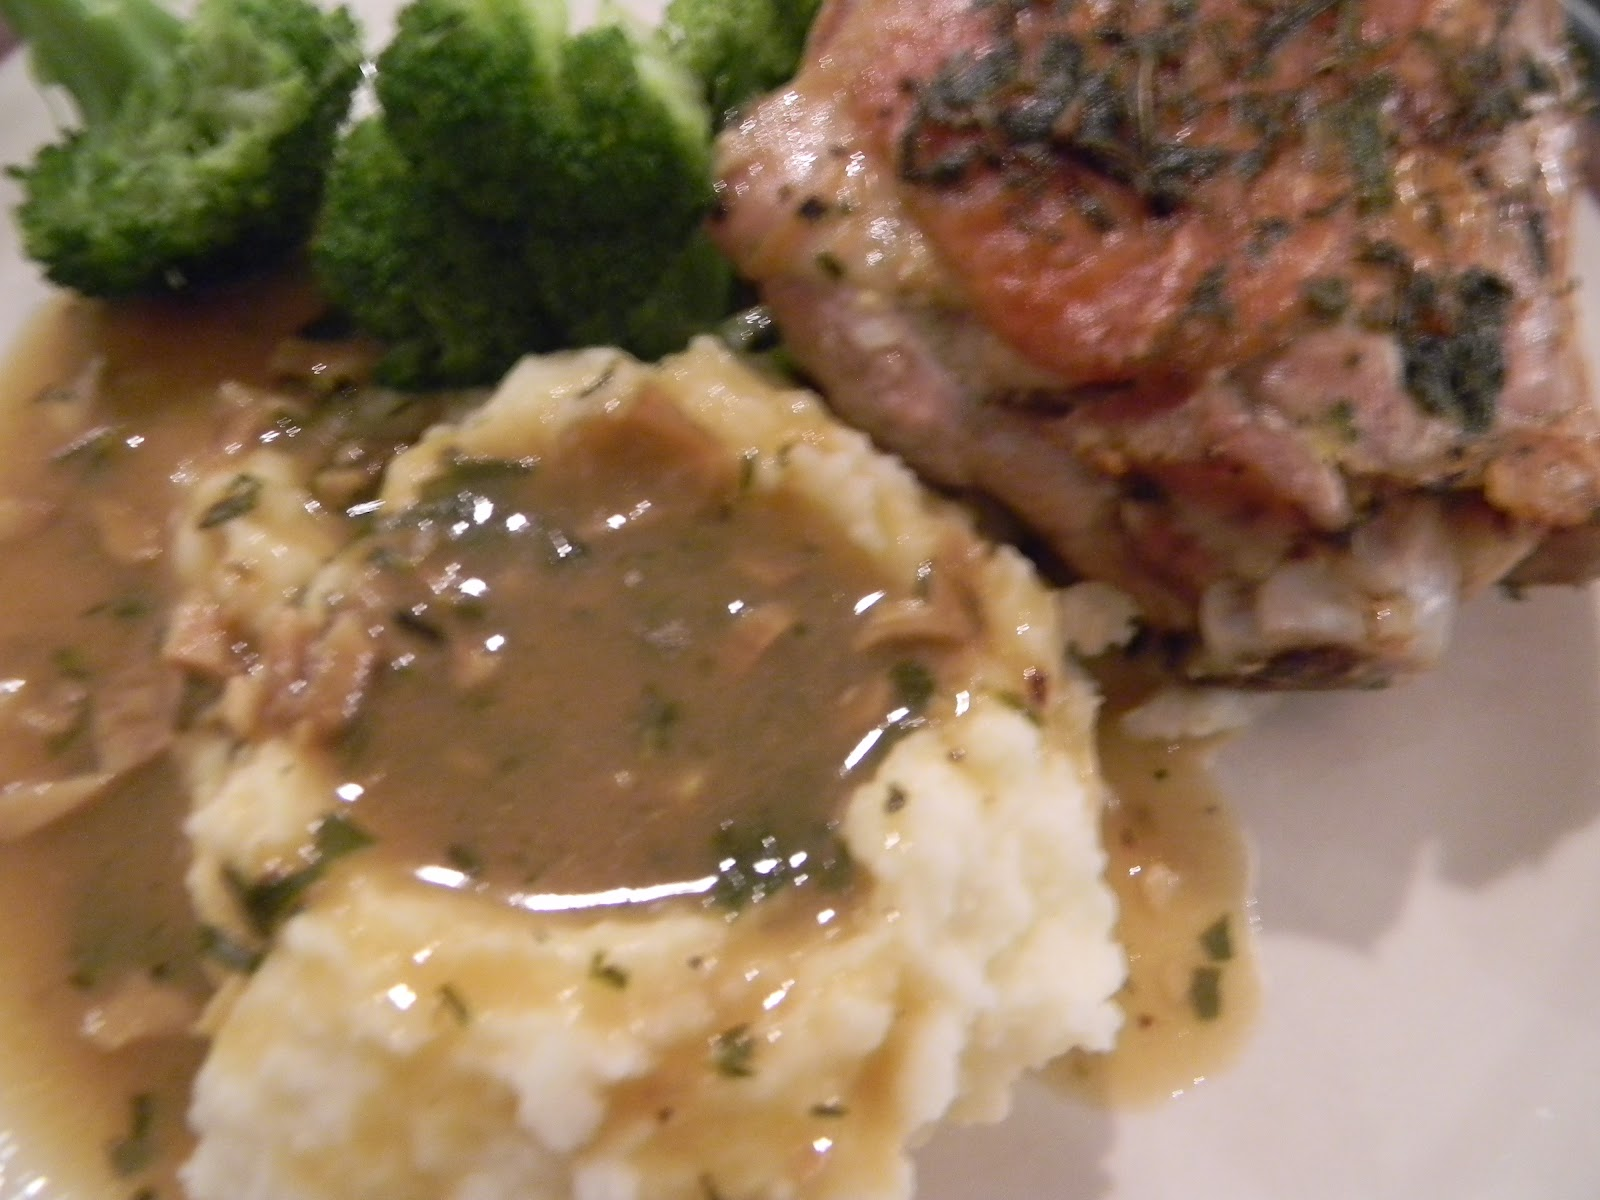 37 Cooks: Roast Turkey with Porcini Mushroom Gravy